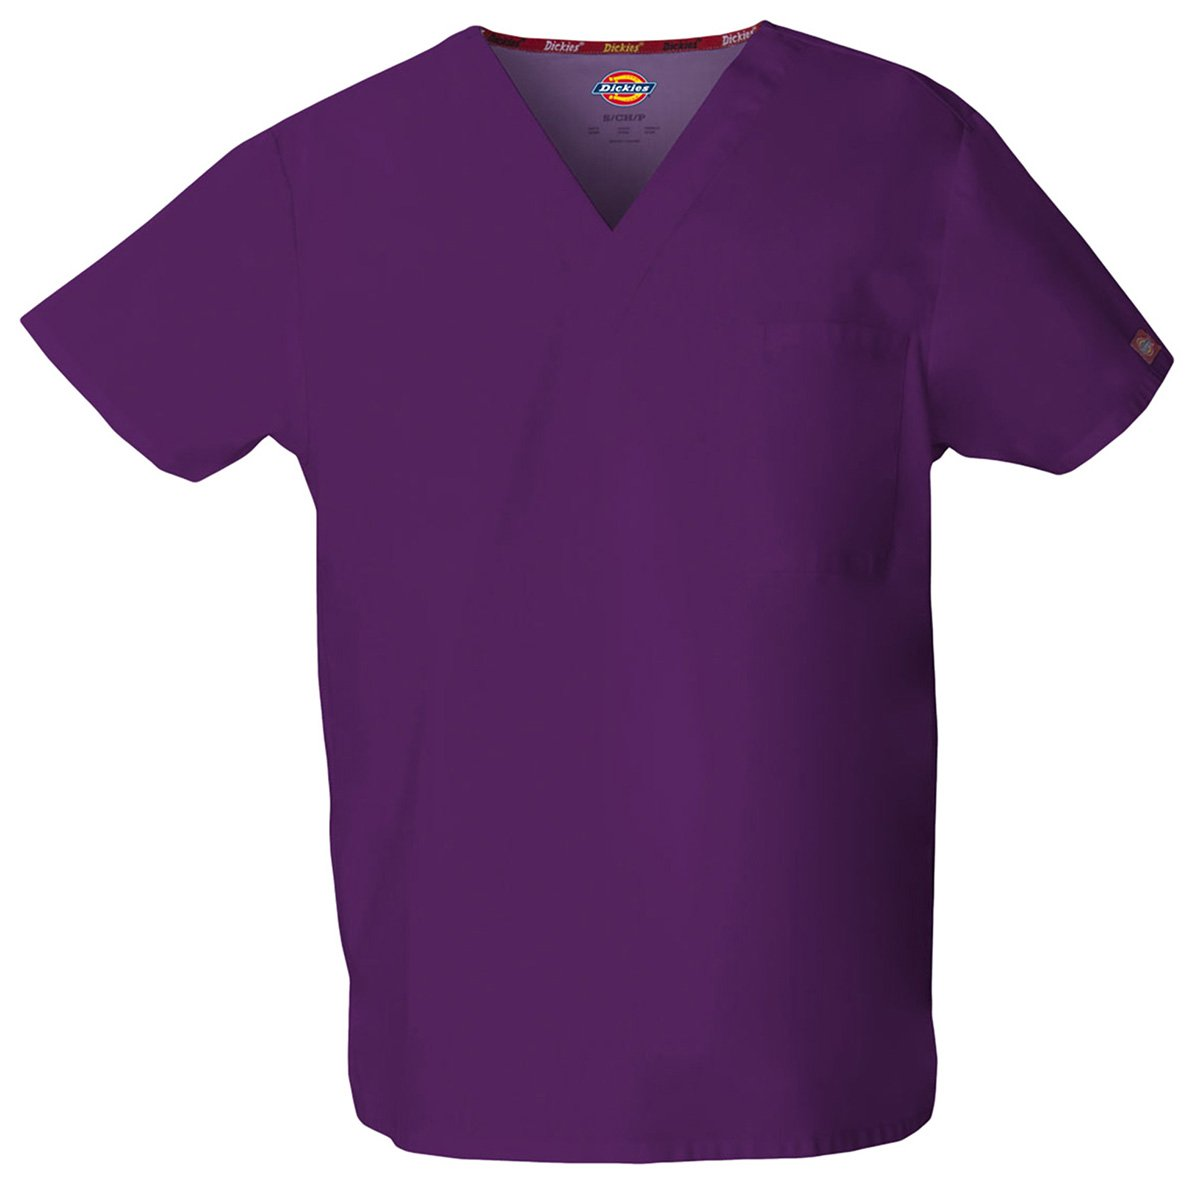 Dickies Unisex Bar-Tacked V-Neck Top_Eggplant_XX-Large,83706